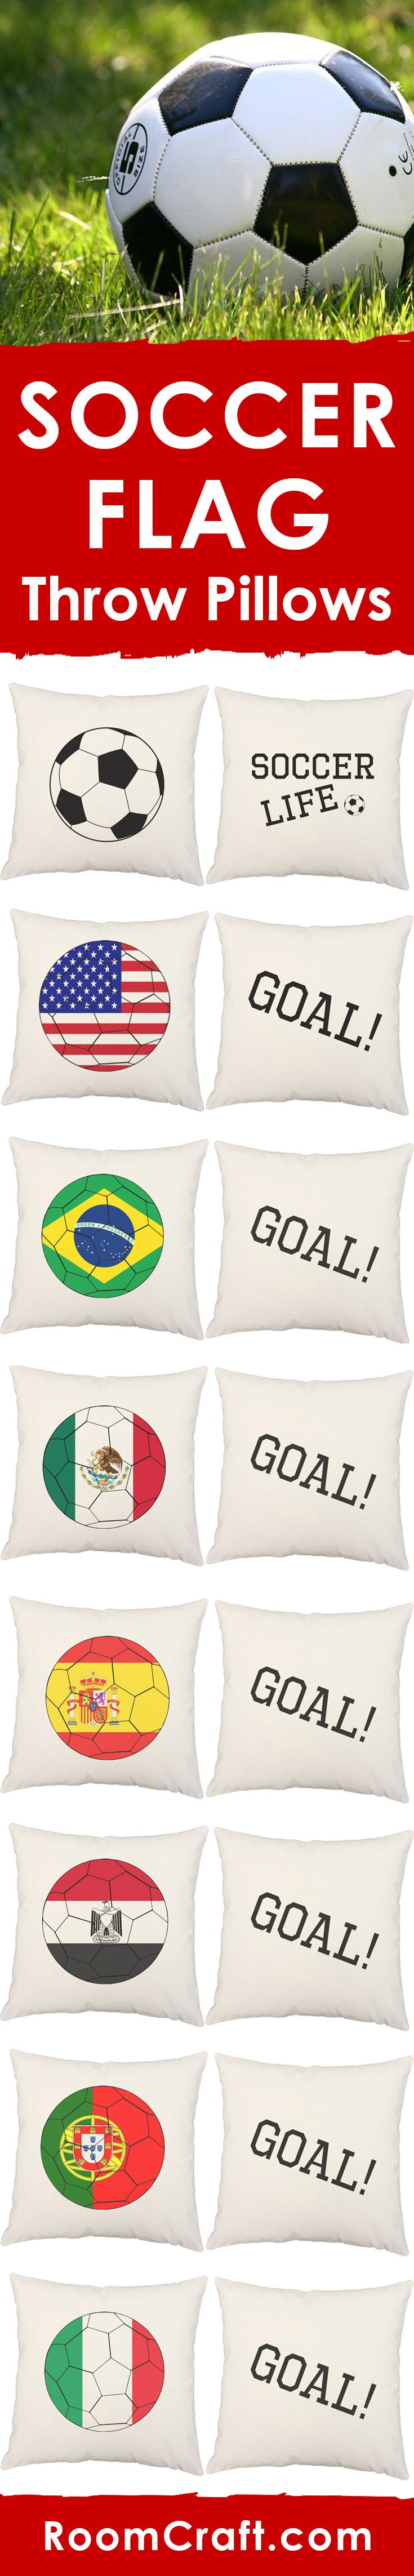 Score a goal with these fun country flag soccer throw pillows. It's the perfect gift for the football fan in your life. All designs are offered in multiple colors, sizes and fabrics making them the perfect addition to any sports room or man cave. Each sports pillow cover set is made to order in the USA and features 3 wooden buttons on the back for closure. Choose your favorite and create a truly unique pillow set! #roomcraft